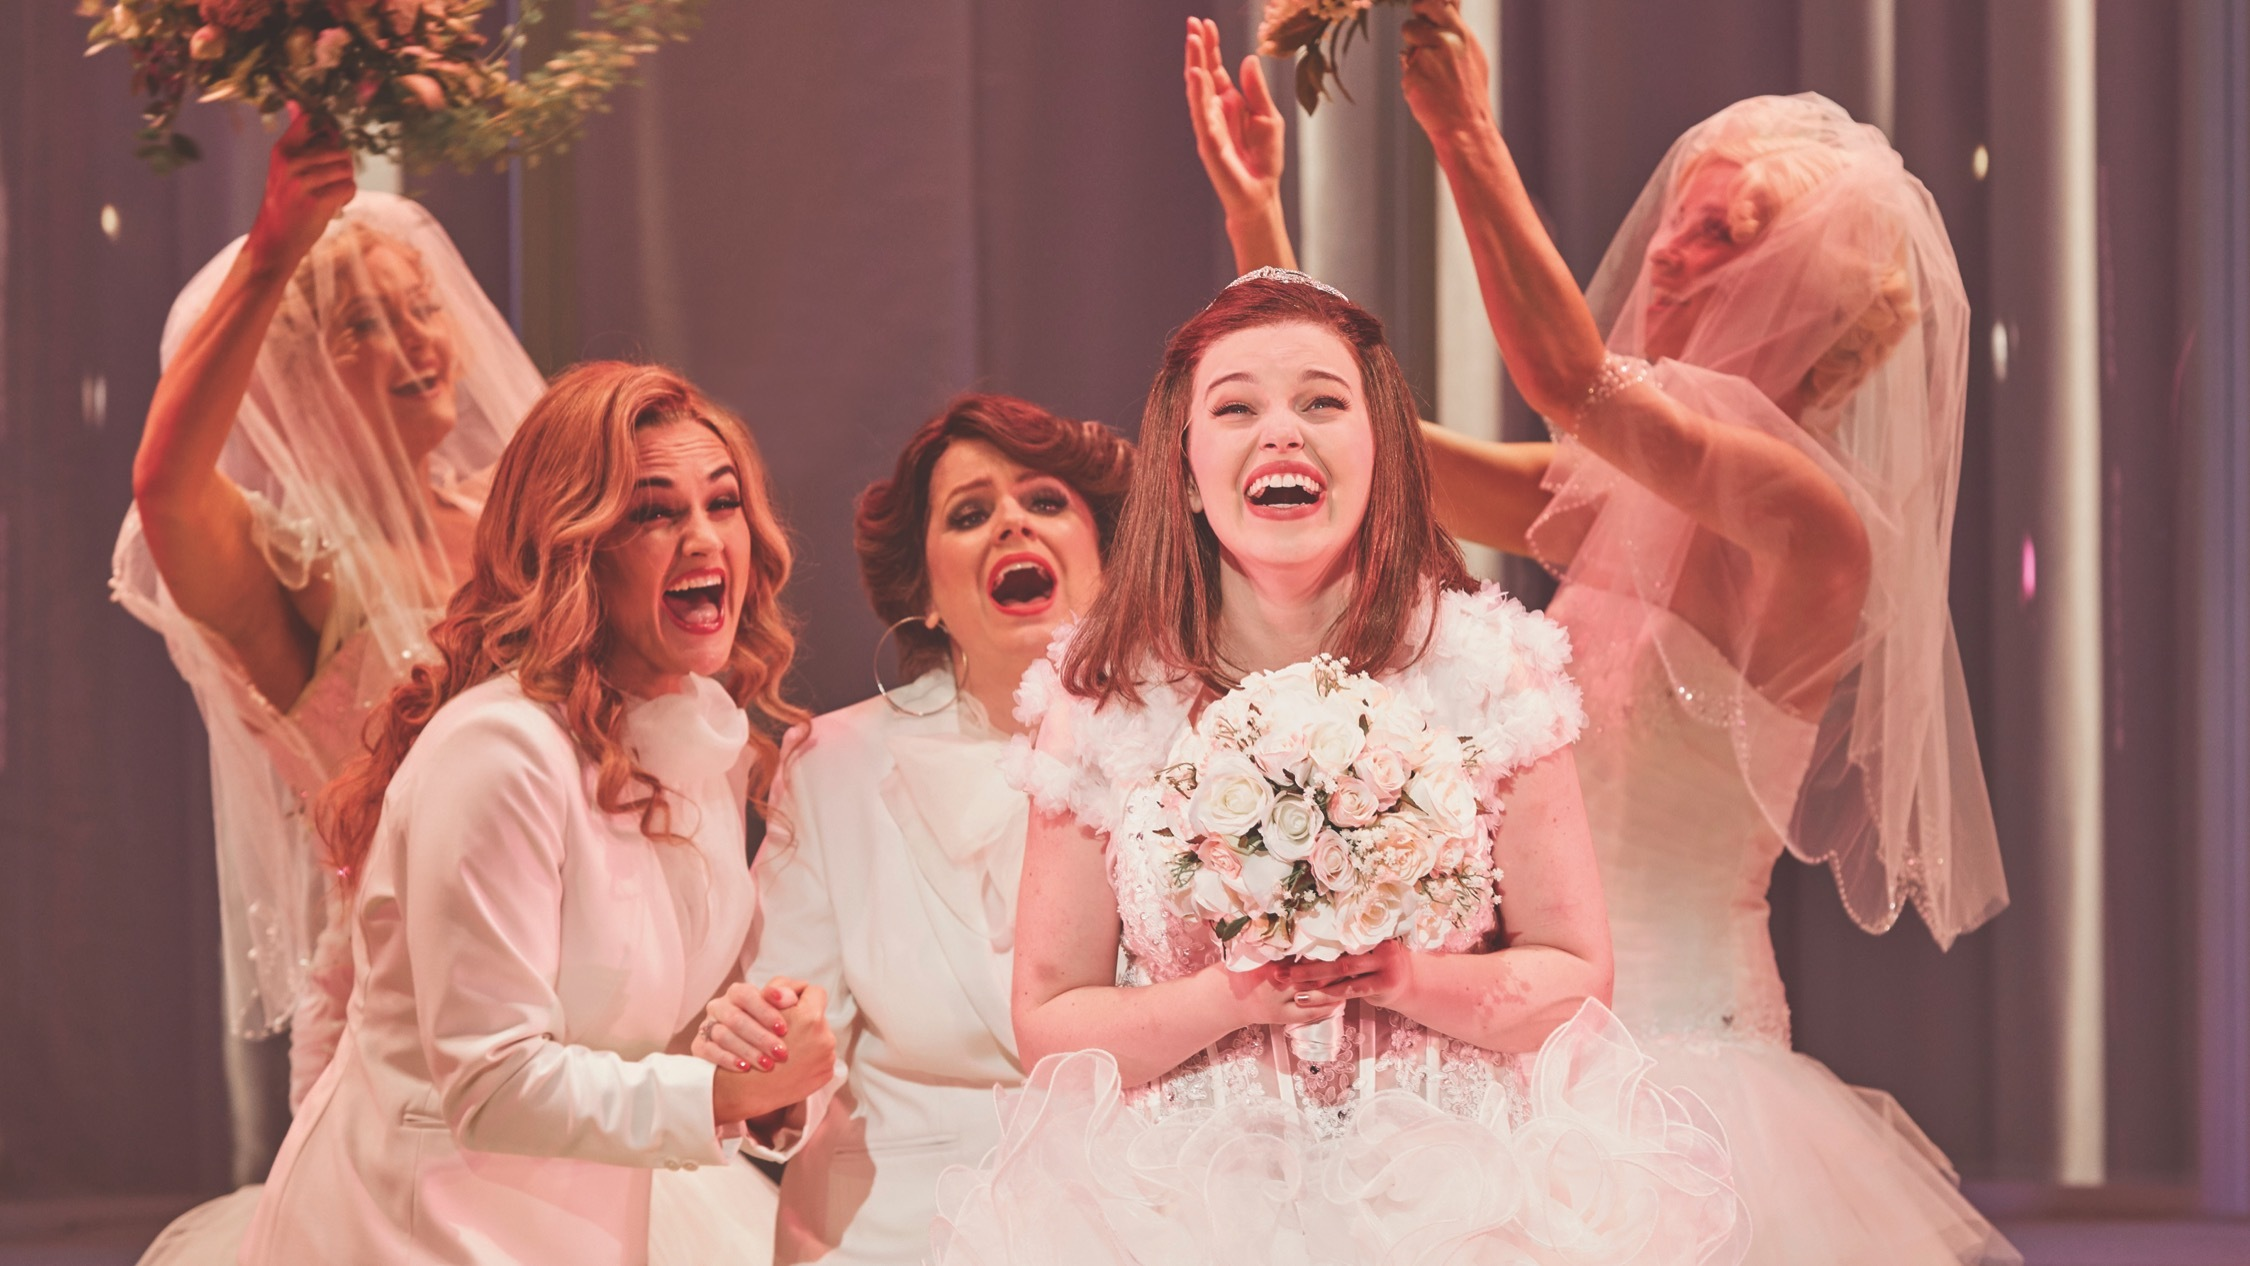 Hilary Cole, Helen Dallimore and Maggie McKenna in Sydney Theatre Company and Global Creatures Production of Muriel's Wedding the Musical